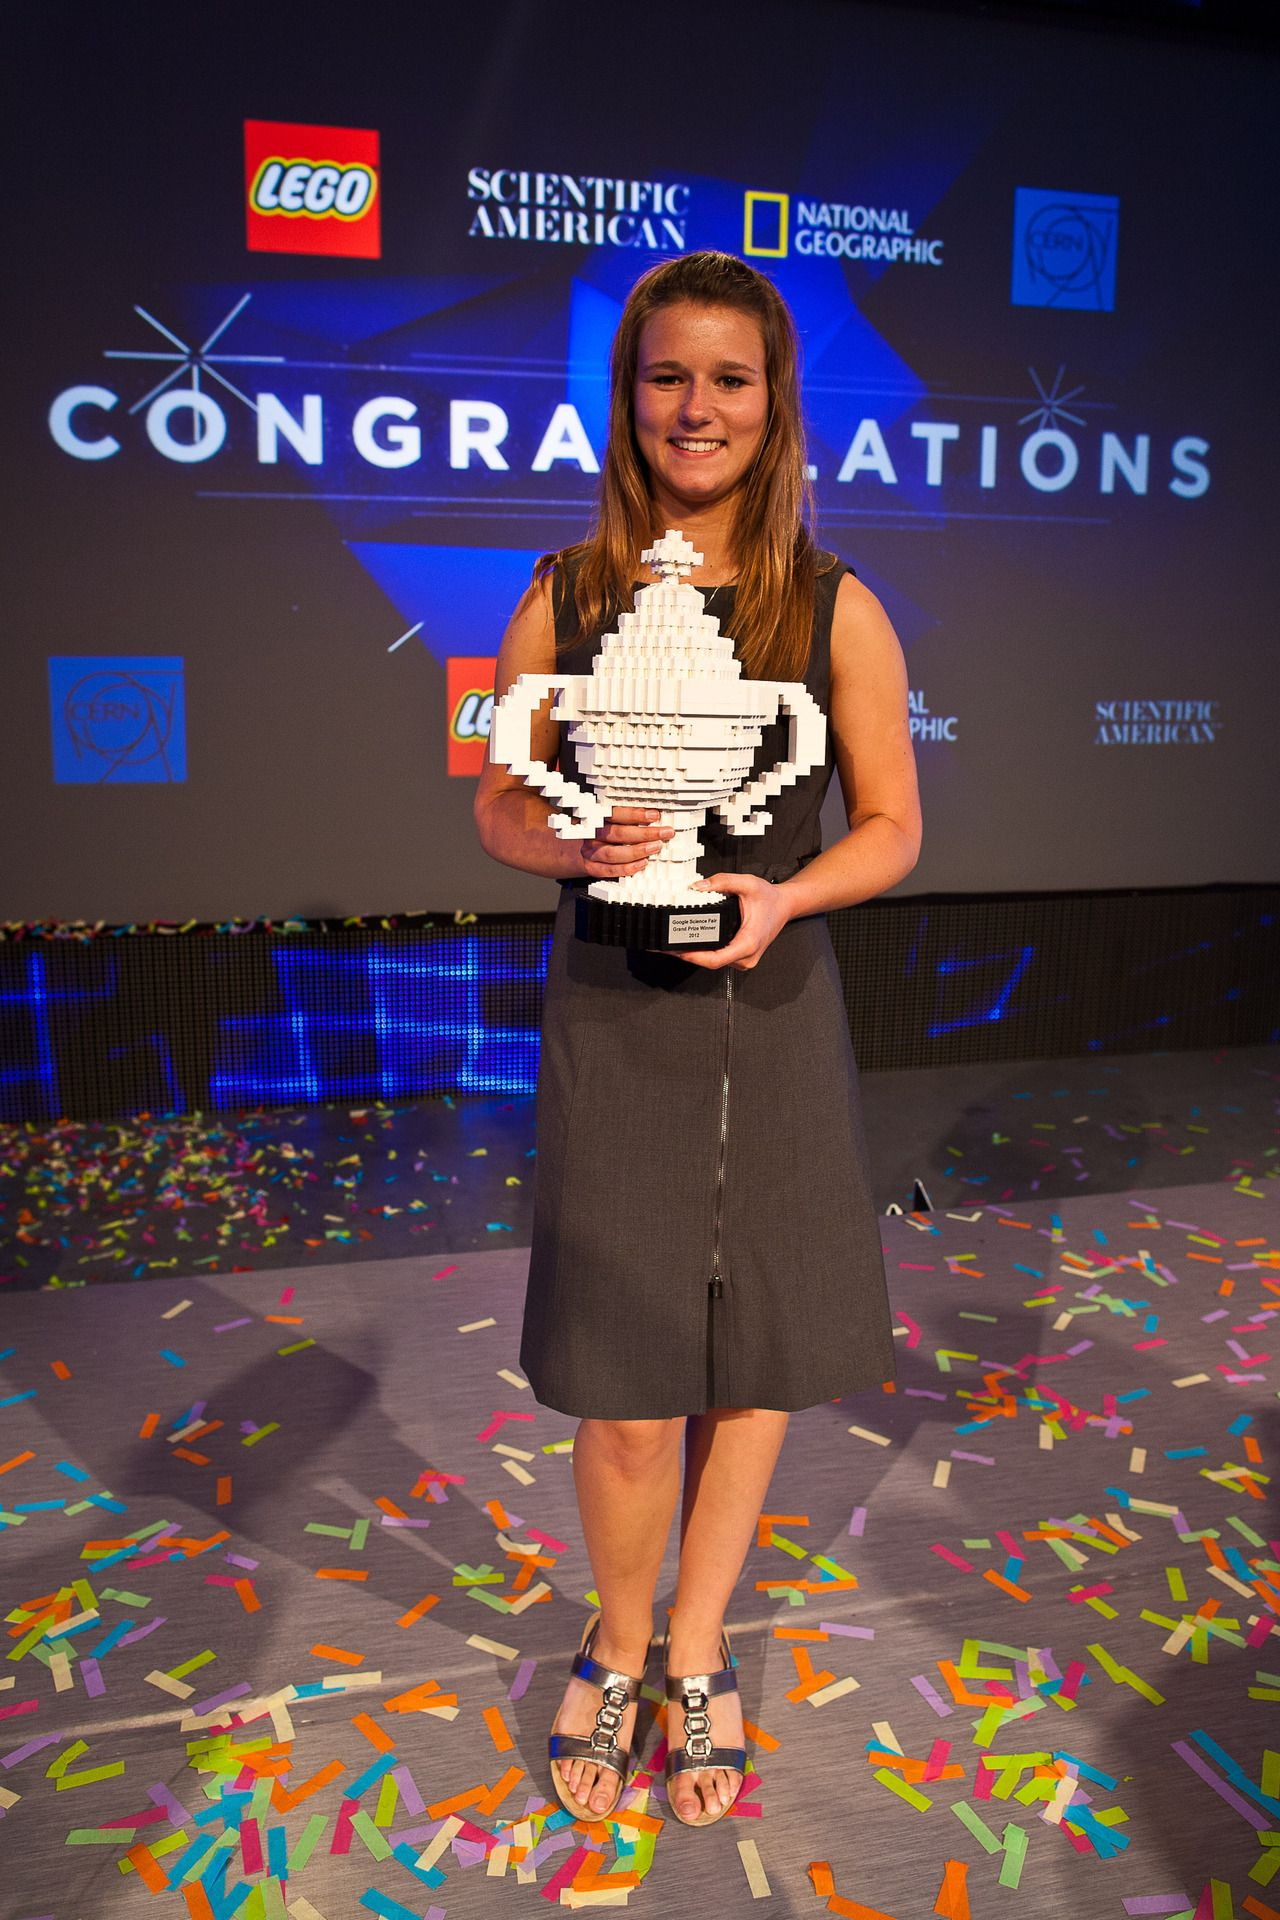 meet brittany wenger, google science fair 2012 winner and all-around